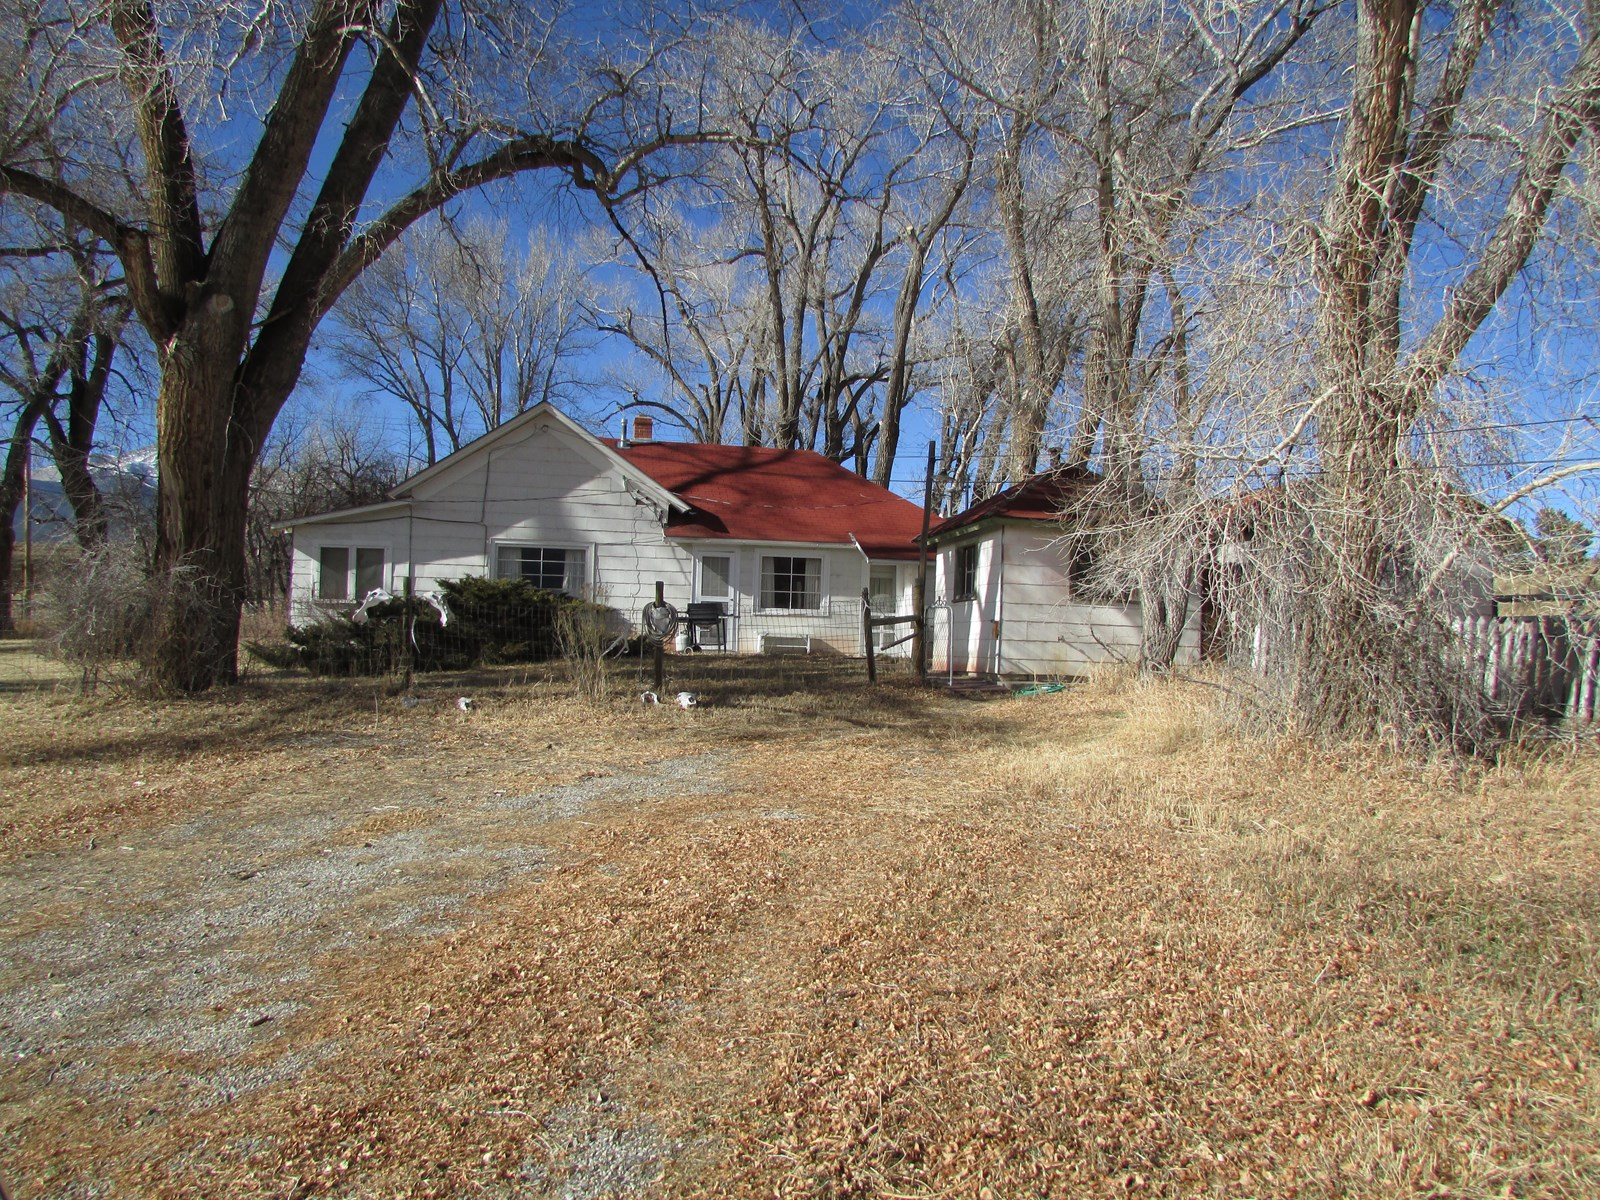 Large Colorado Historic Ranch for Sale in Chaffee County CO